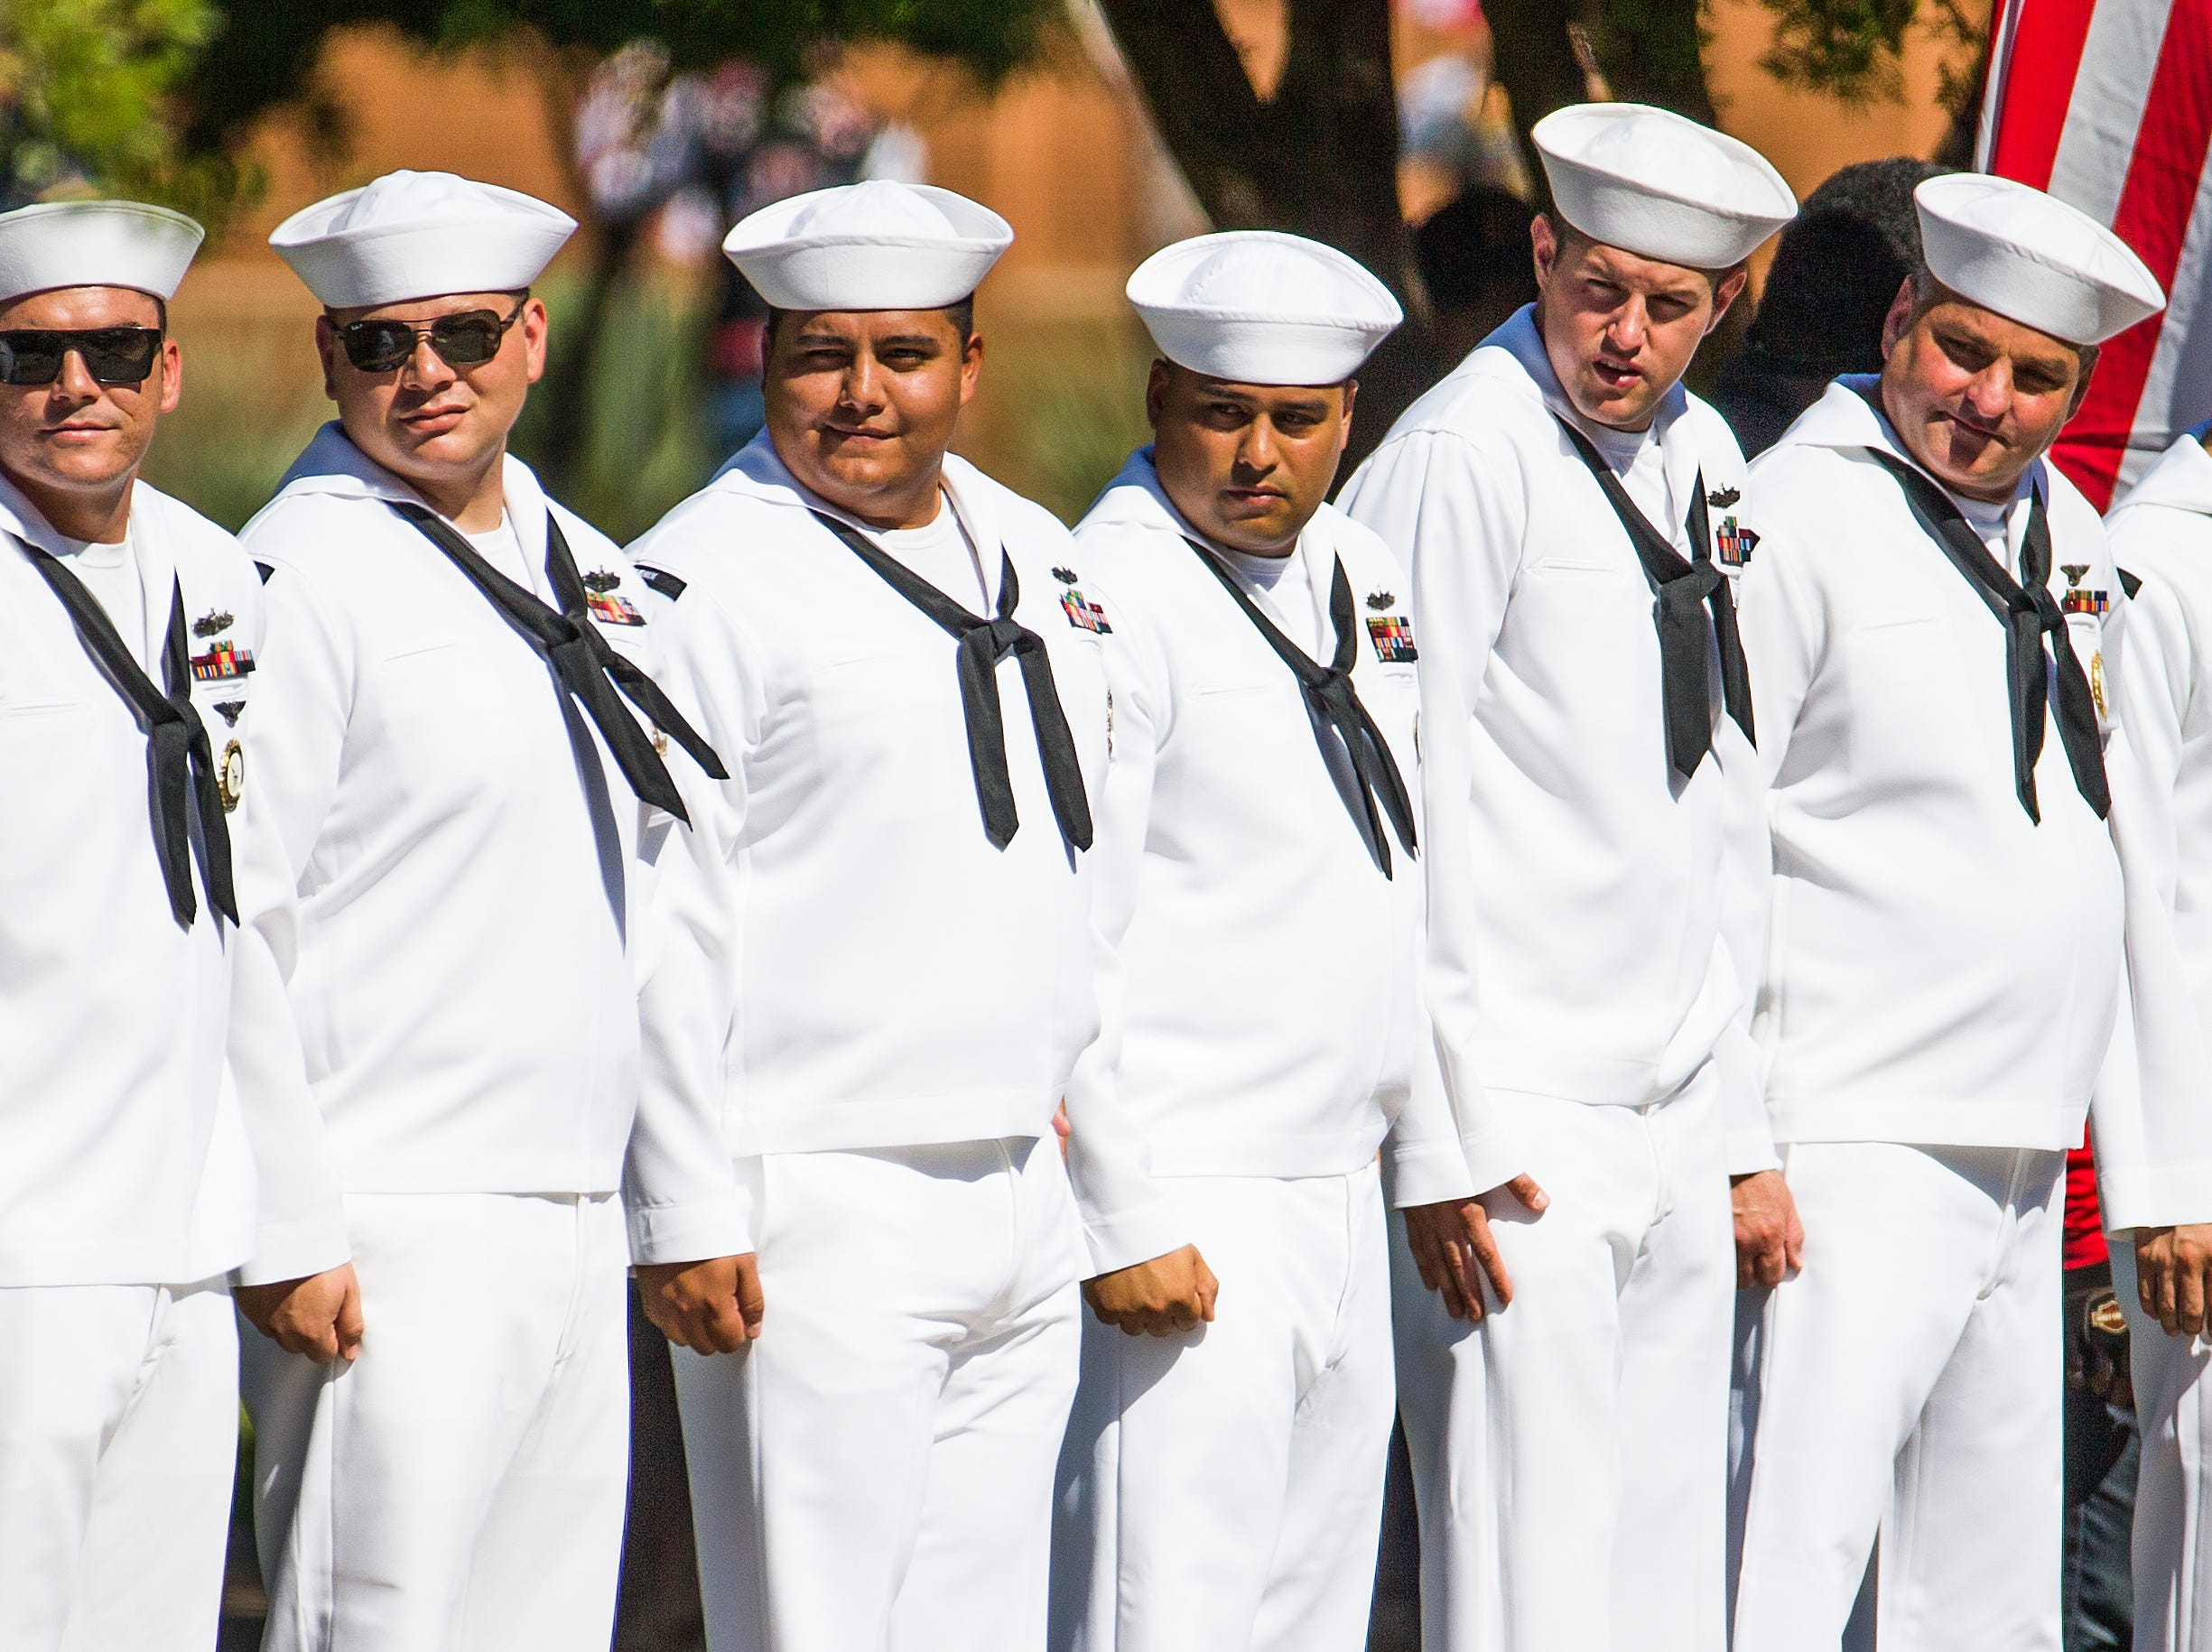 A Navy honor guard waits for Cindy McCain and her family to arrive at the Capitol in Phoenix Wednesday morning, August 29, 2018. A memorial service for Sen. John McCain will be held and McCain's body will lie in state in the rotunda for the public to pay their final respects.